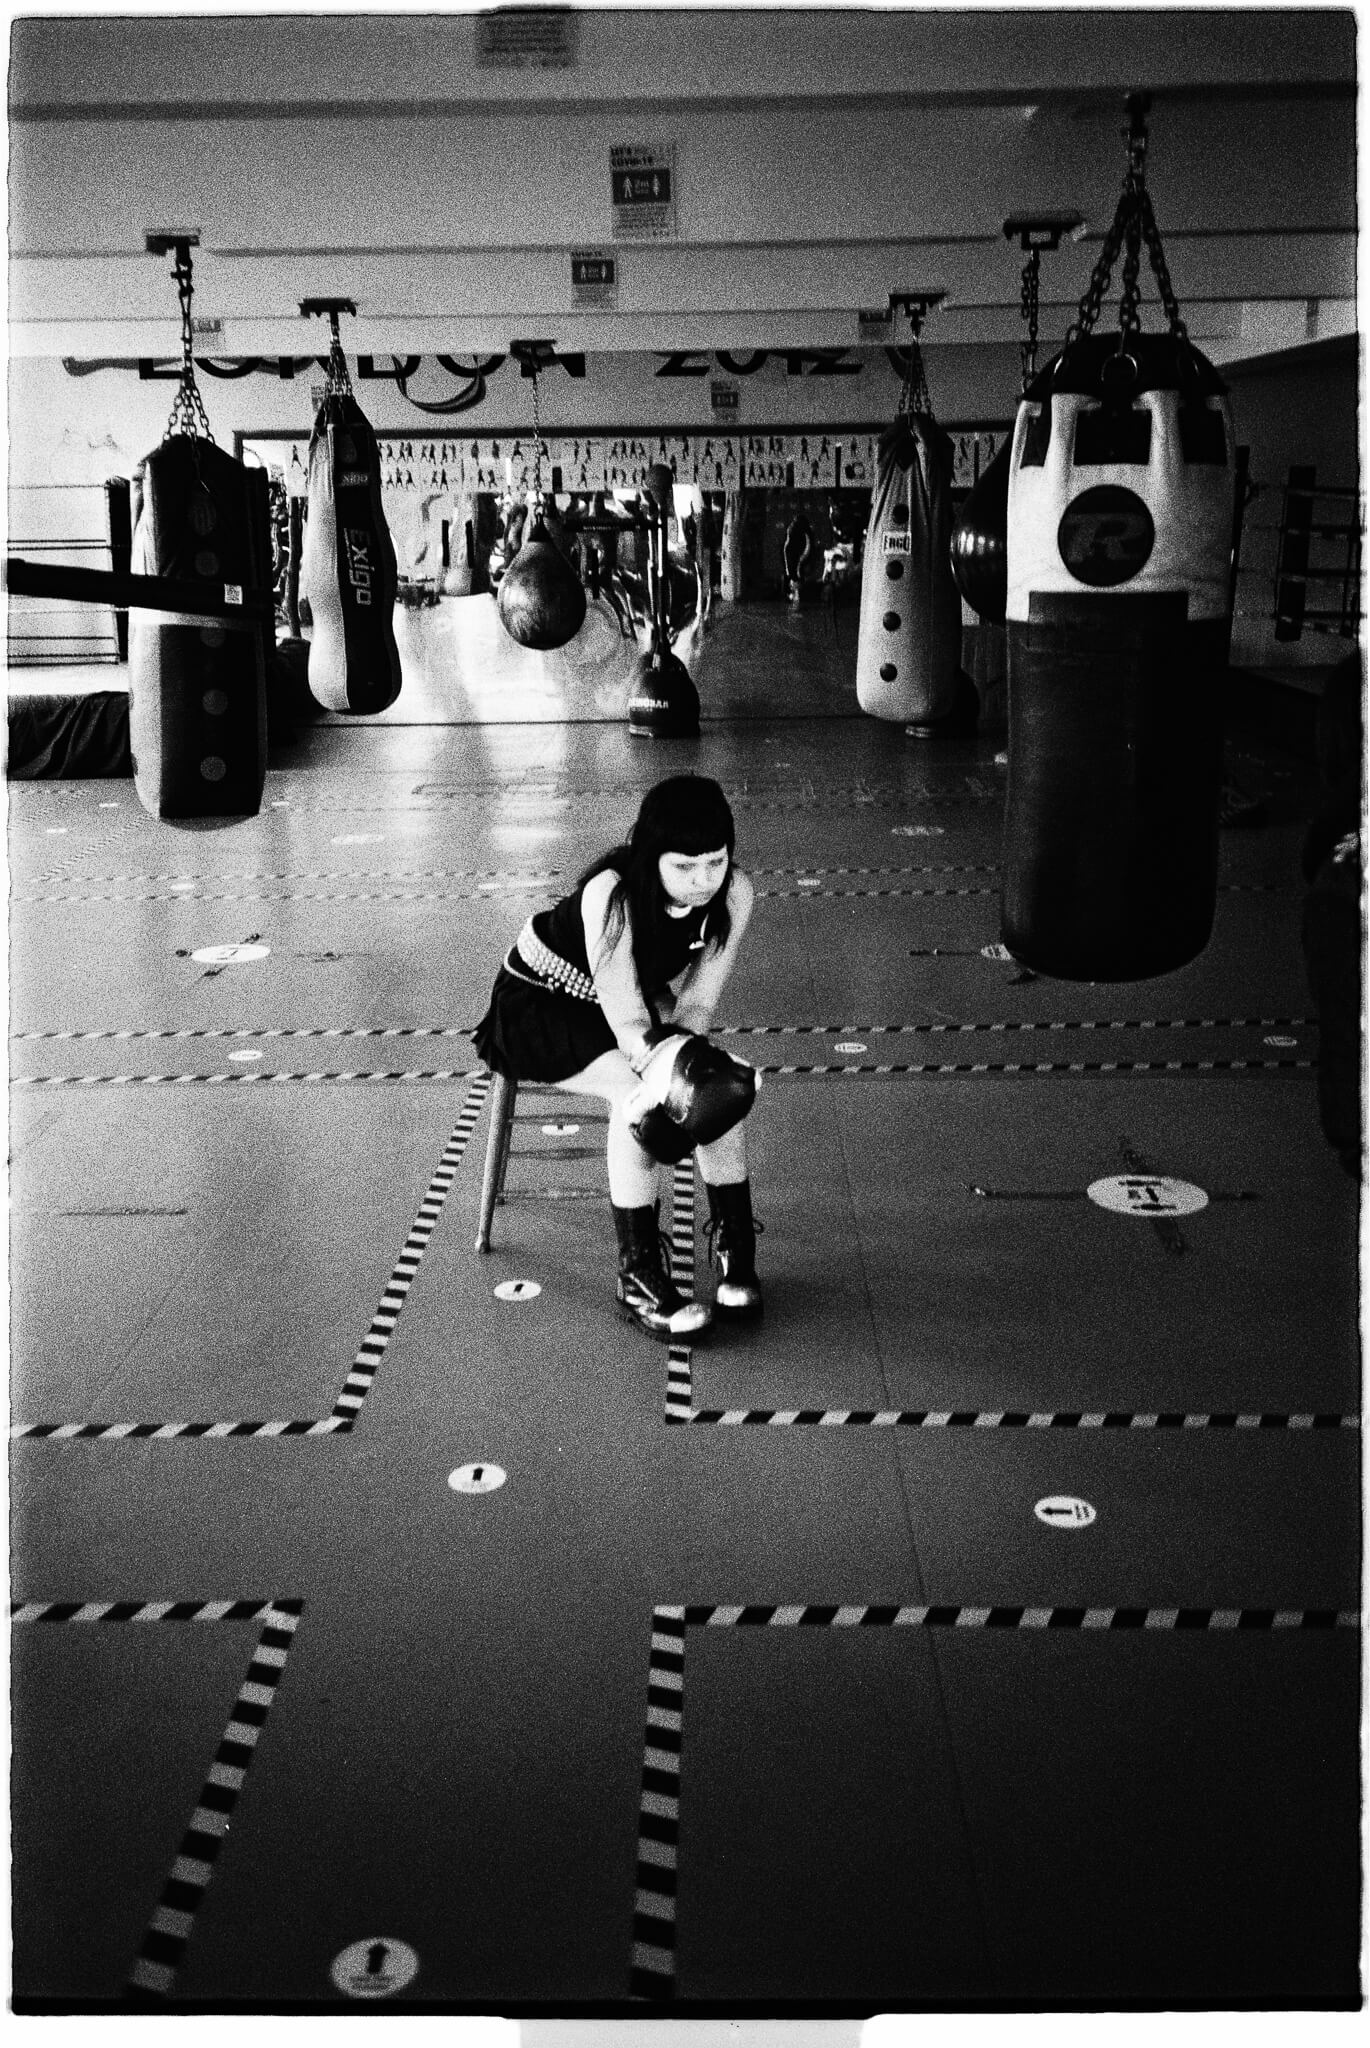 Underground Then and Now - Female boxing shoot